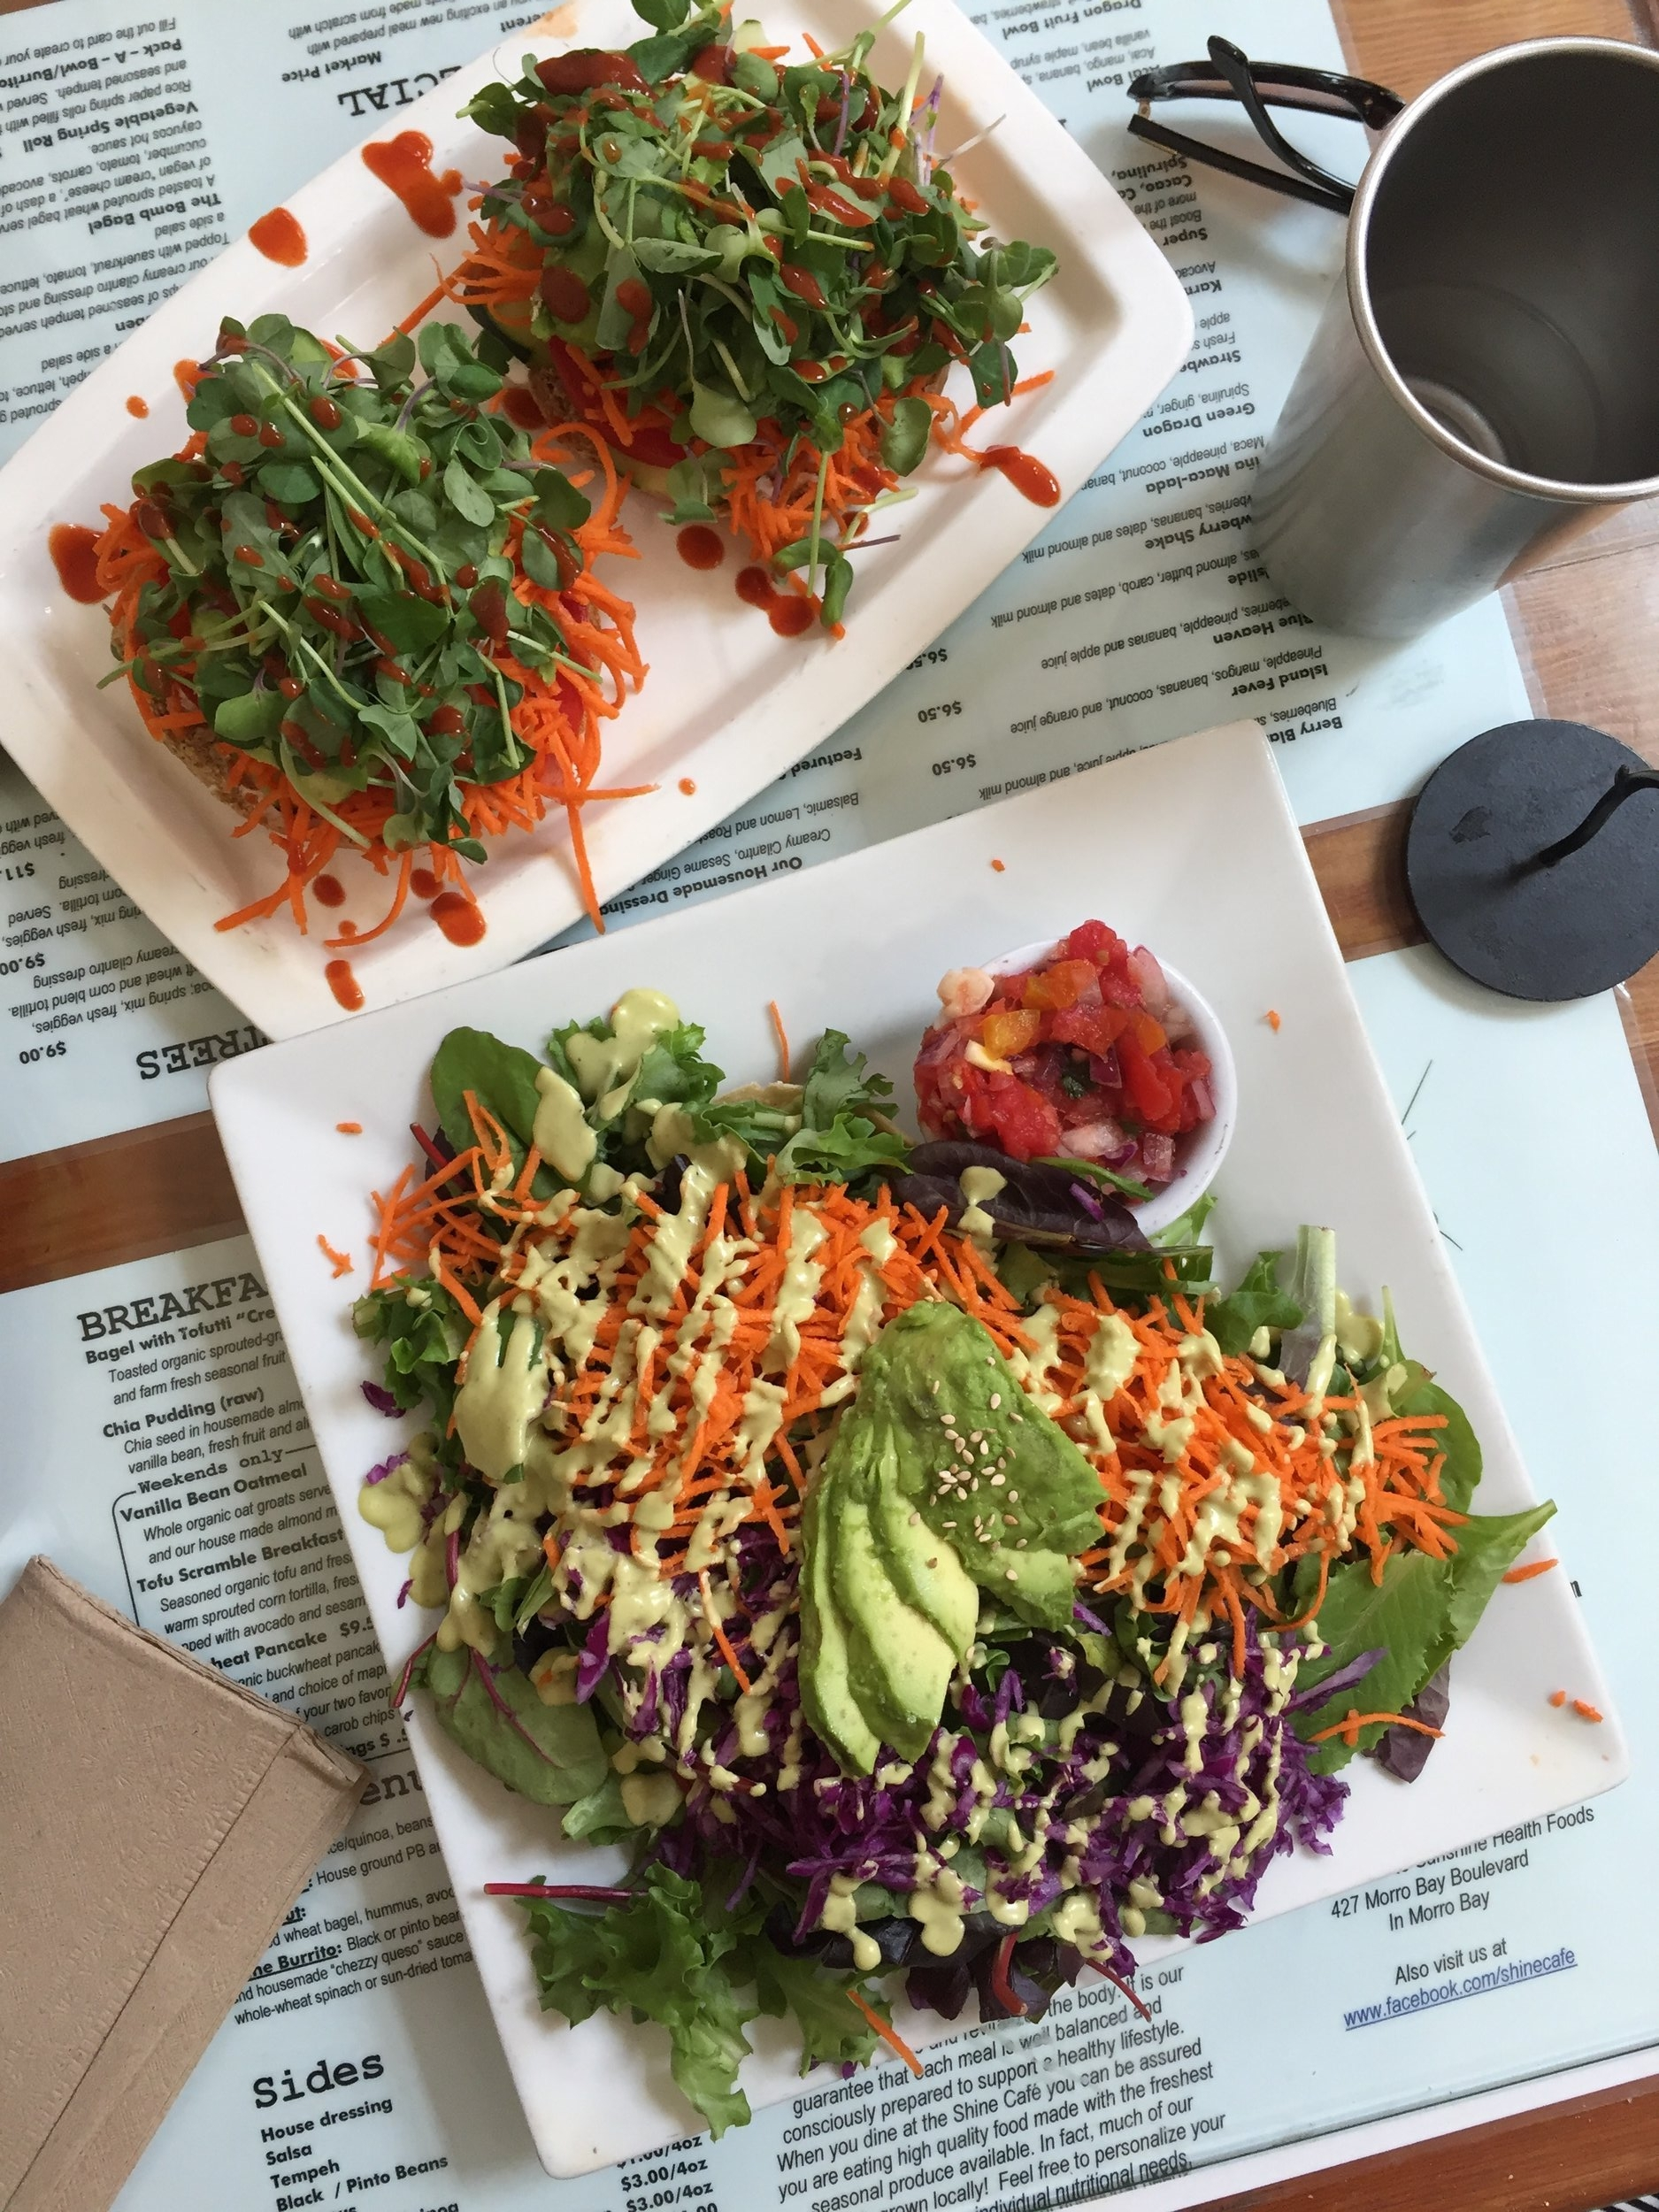 lunch with dad @  Shine Cafe  - best vegan place near me! a sprouted grain bagel with tofu cream cheeze + veg for dad & a taco with tempeh, quinoa, greens & avo for me (its buried, but I was cool with it).